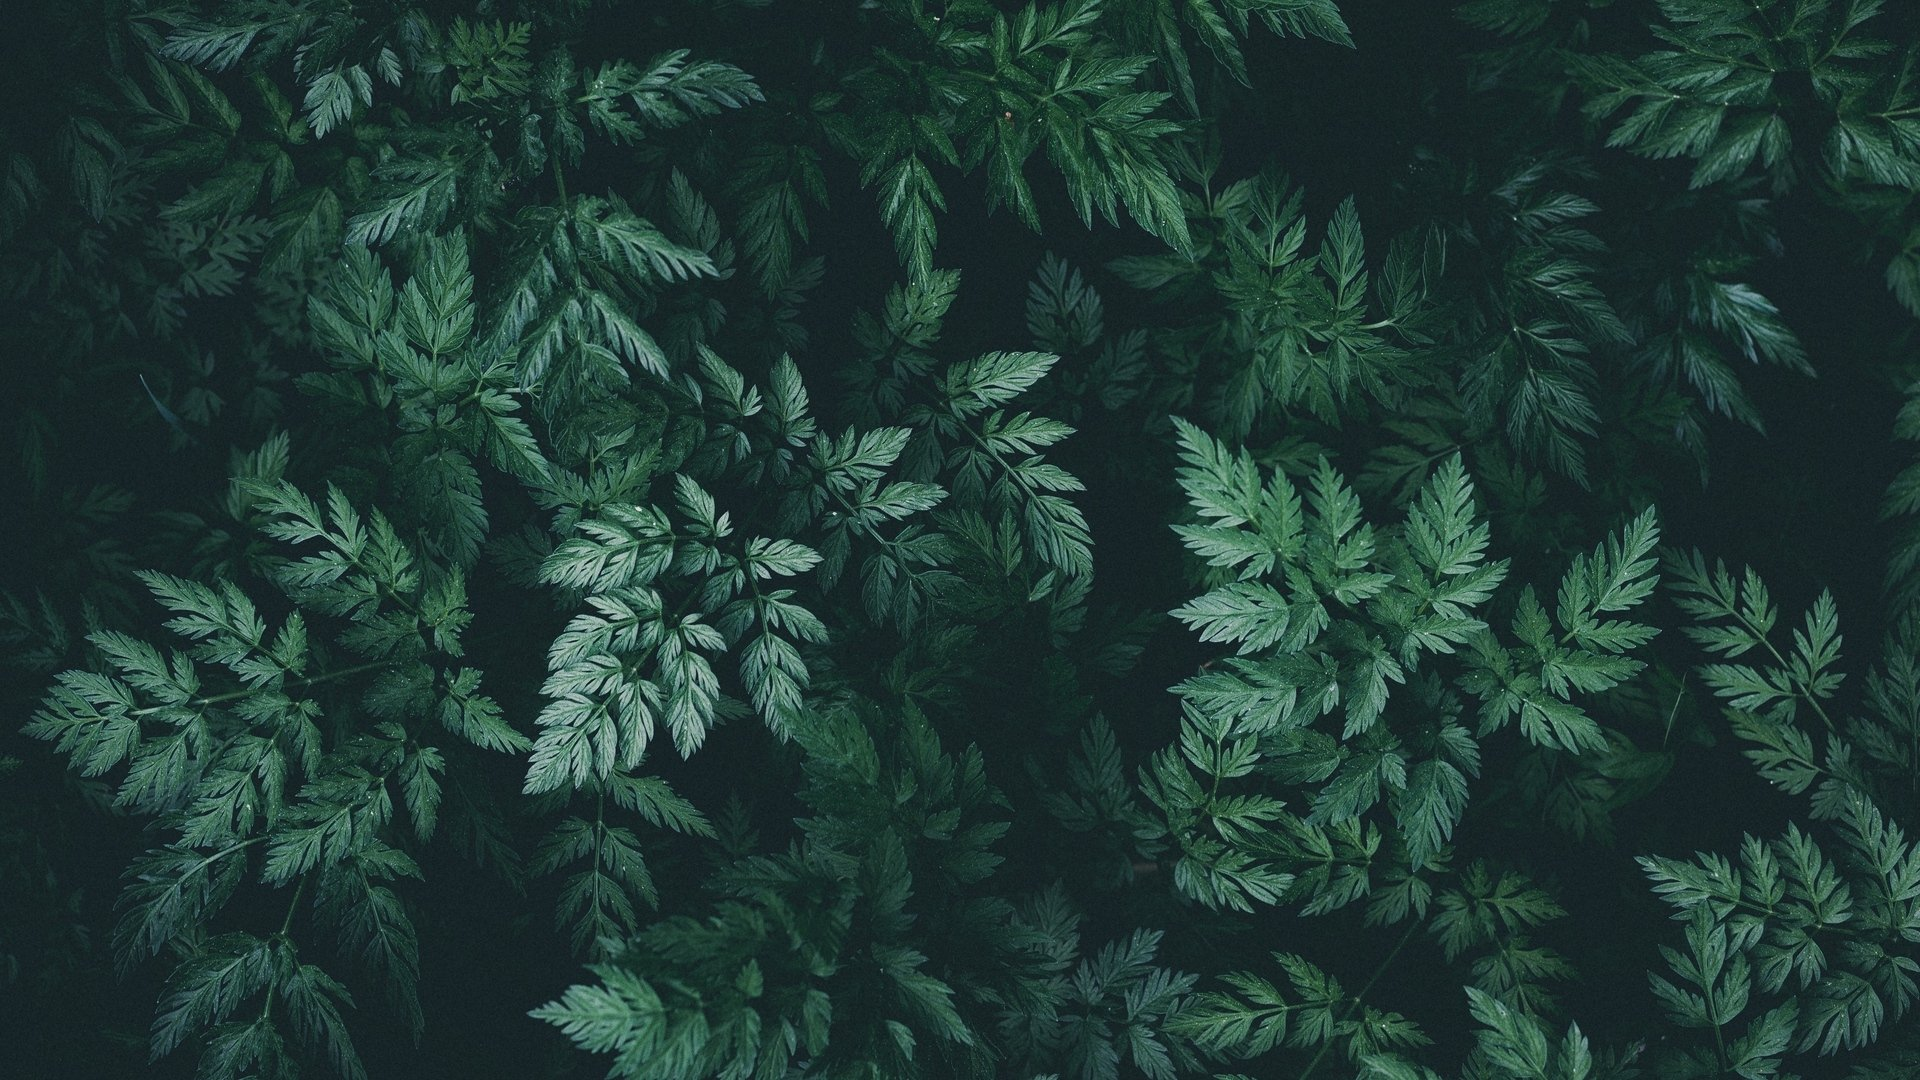 Green Aesthetic Wallpaper Download Full